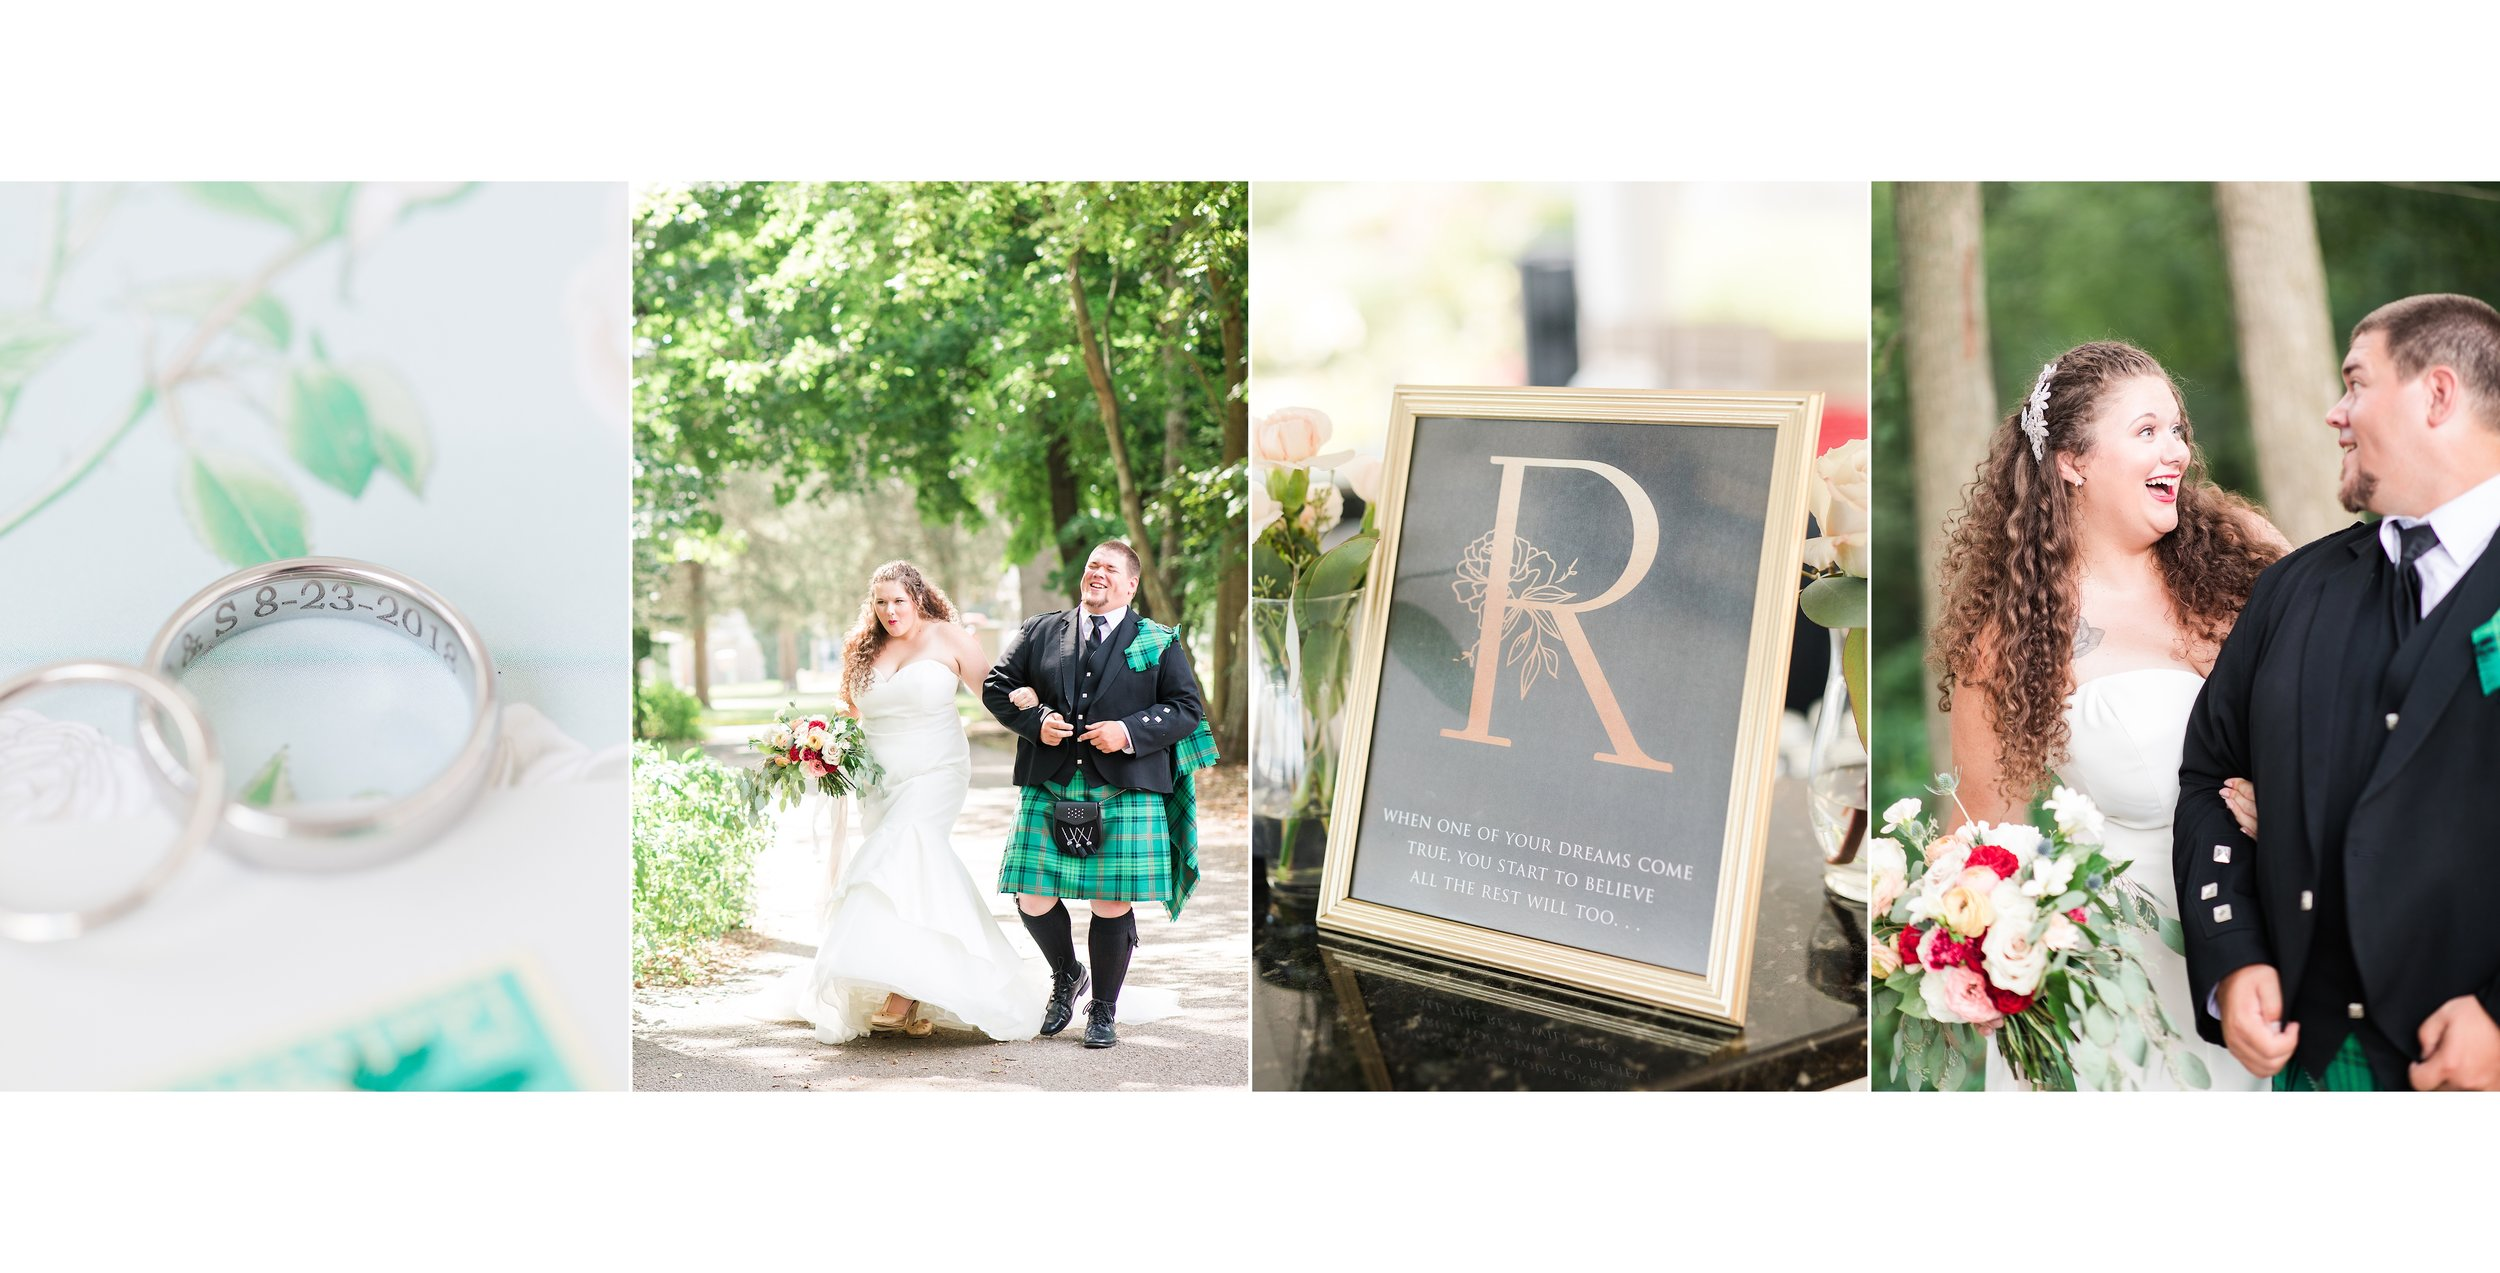 Our_Wedding_Album_12x12_-_30_pages_15.jpg